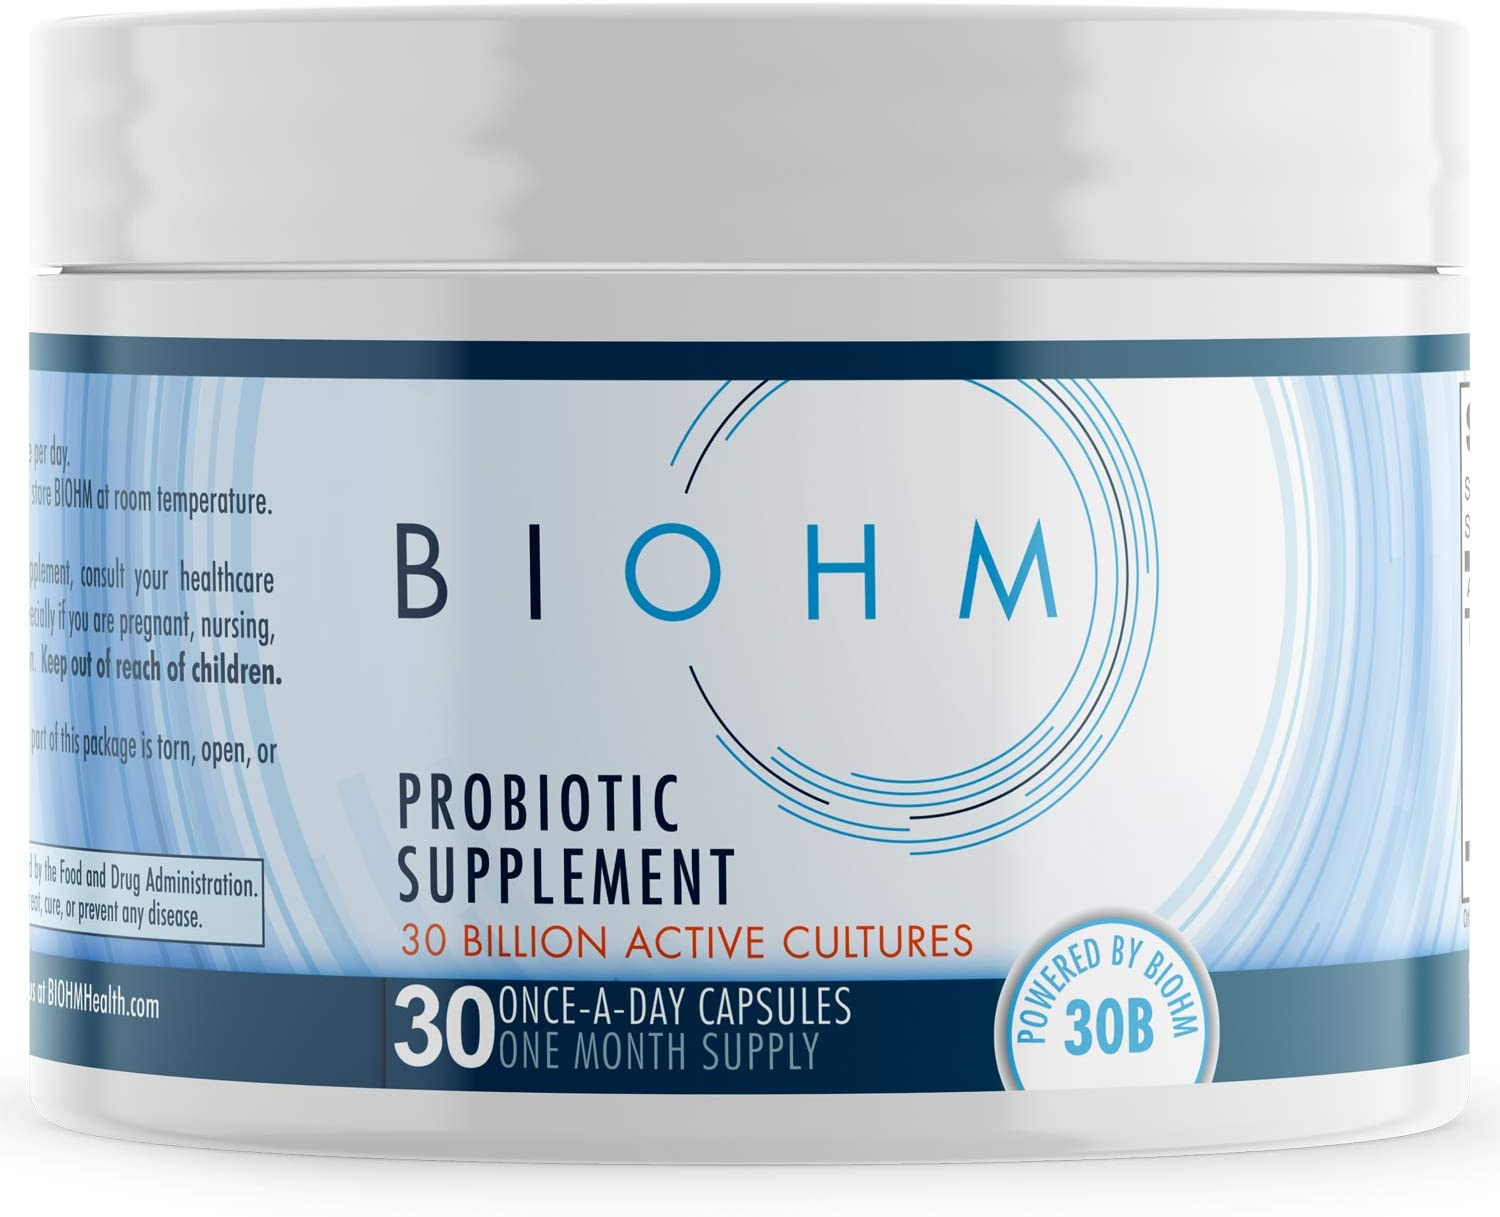 Review of BIOHM Dr. Formulated Organic Probiotic Supplement - 30 Billion CFU